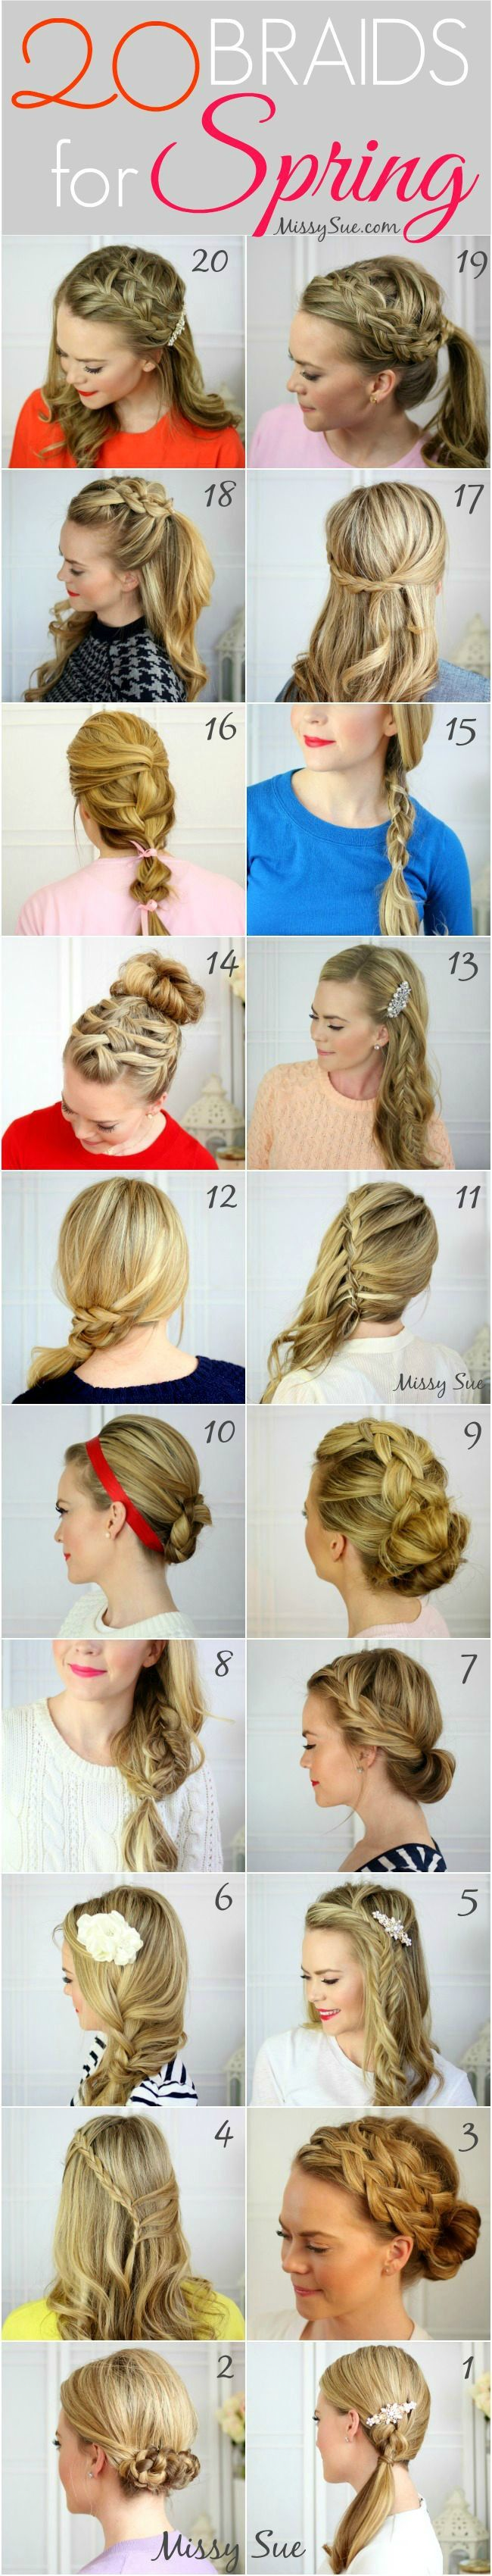 20 Braids for Spring or Summer